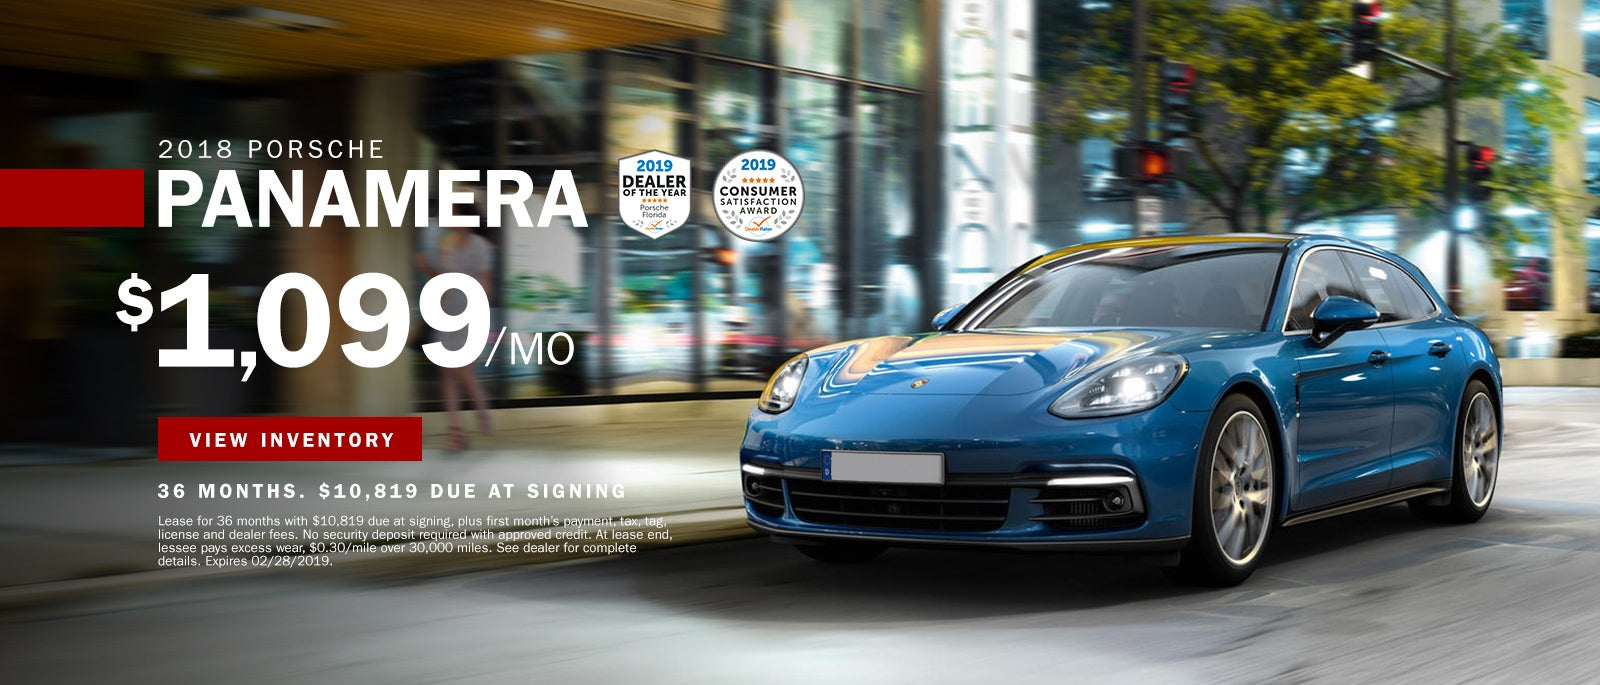 Porsche Dealers South Florida >> Porsche Dealer In Tallahassee Fl Used Cars Tallahassee Capital